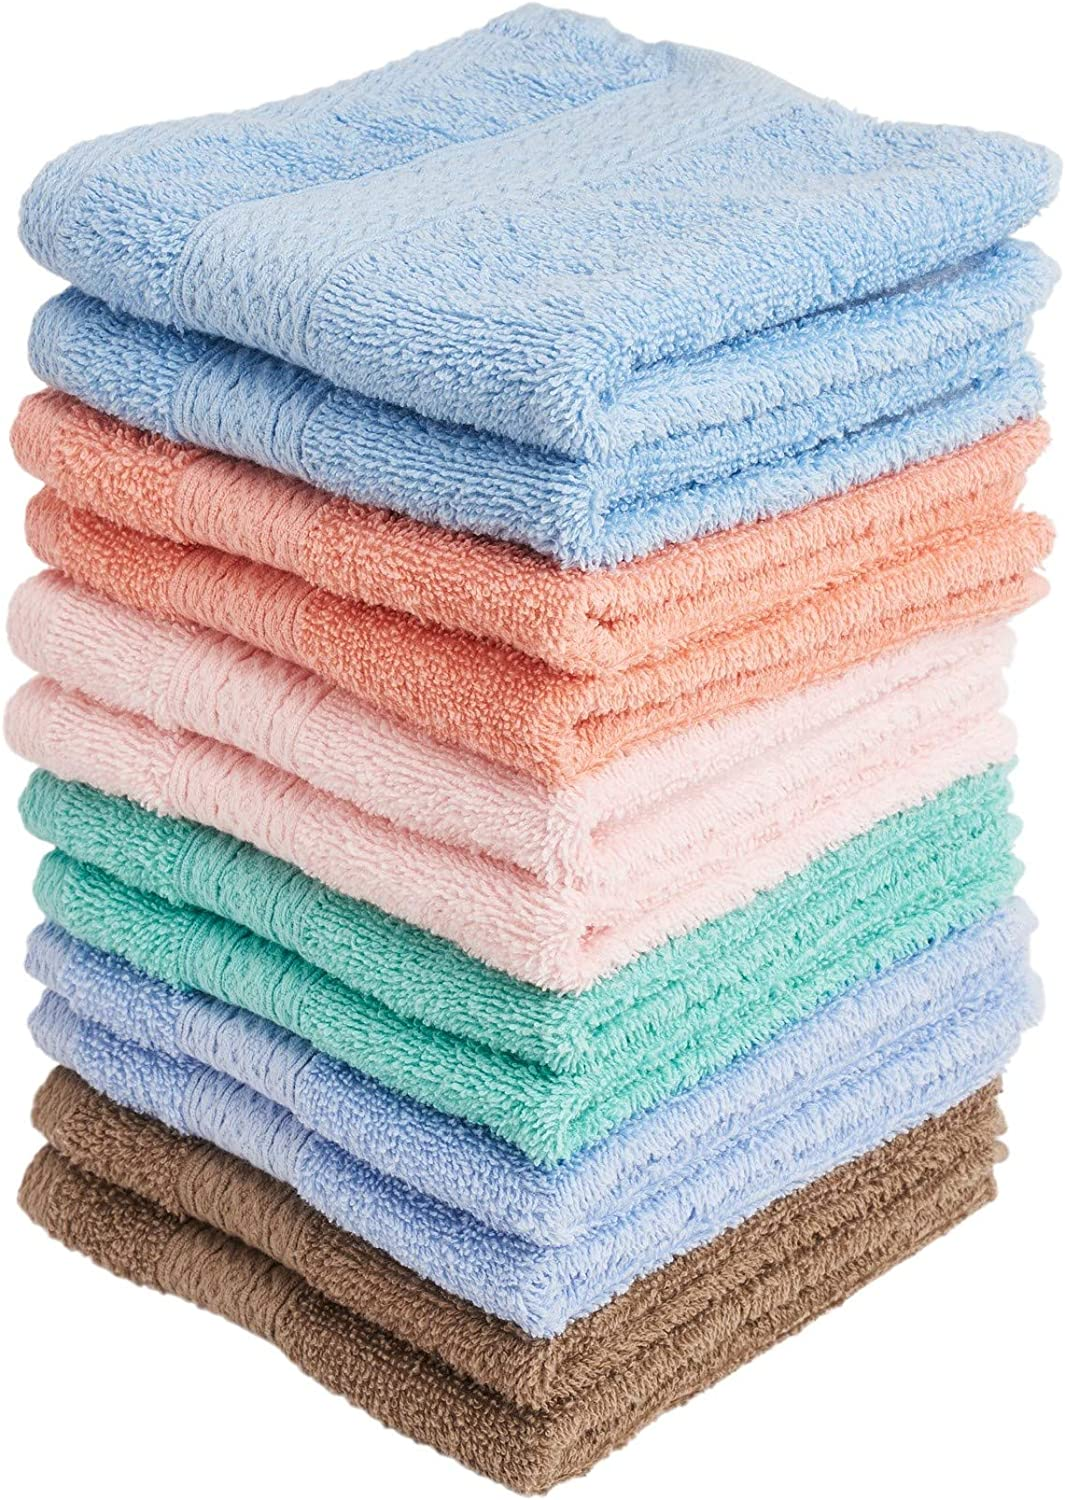 6-Pack Colors Size13 Face-Cloth Washcloths Set,100/% Cotton High Absorbent